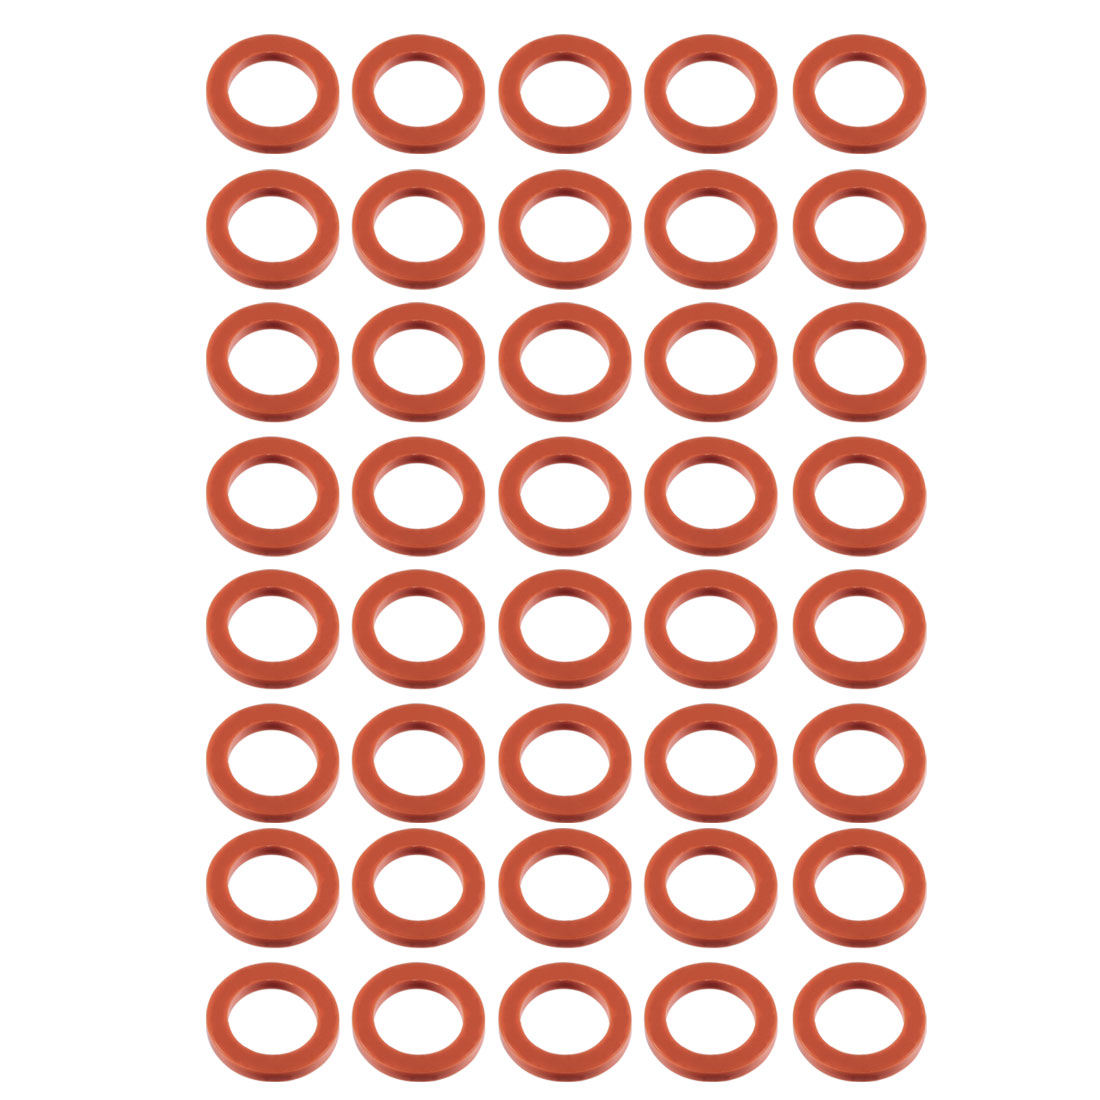 40pcs Red Silicone Round Flat Washer Assortment Size 16x24x3mm Flat Washer - image 2 of 2